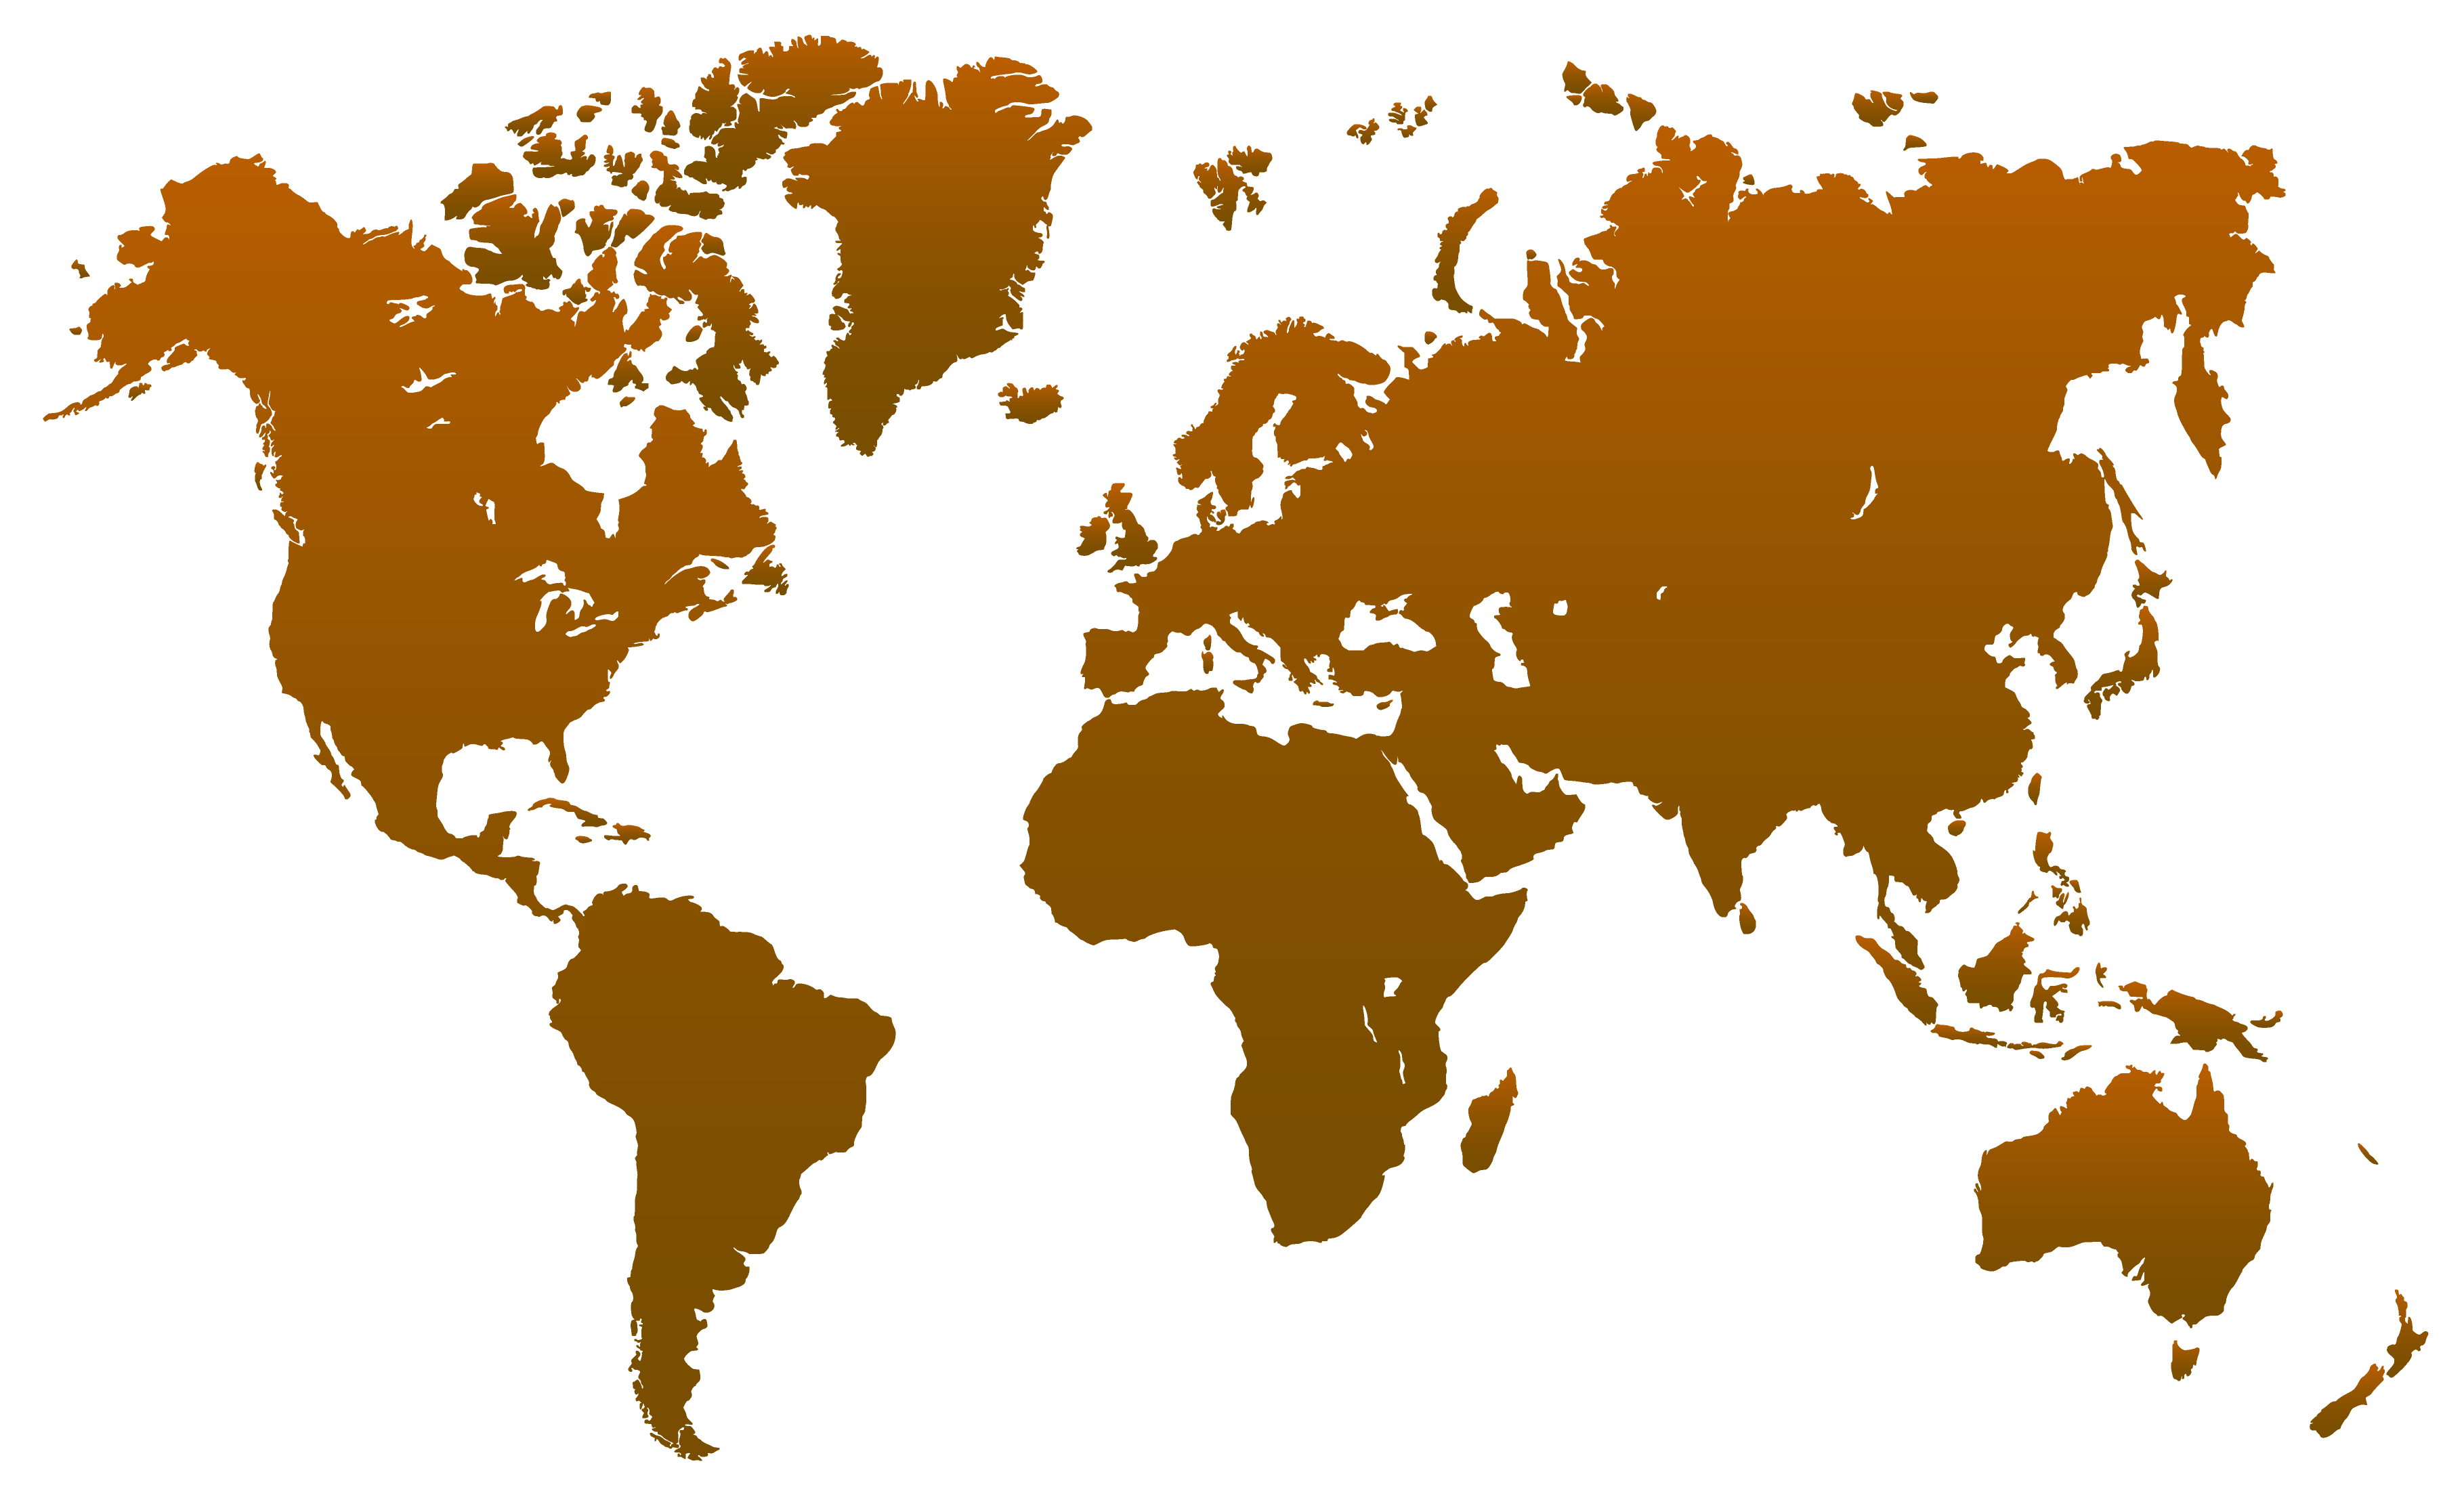 world map transparent png